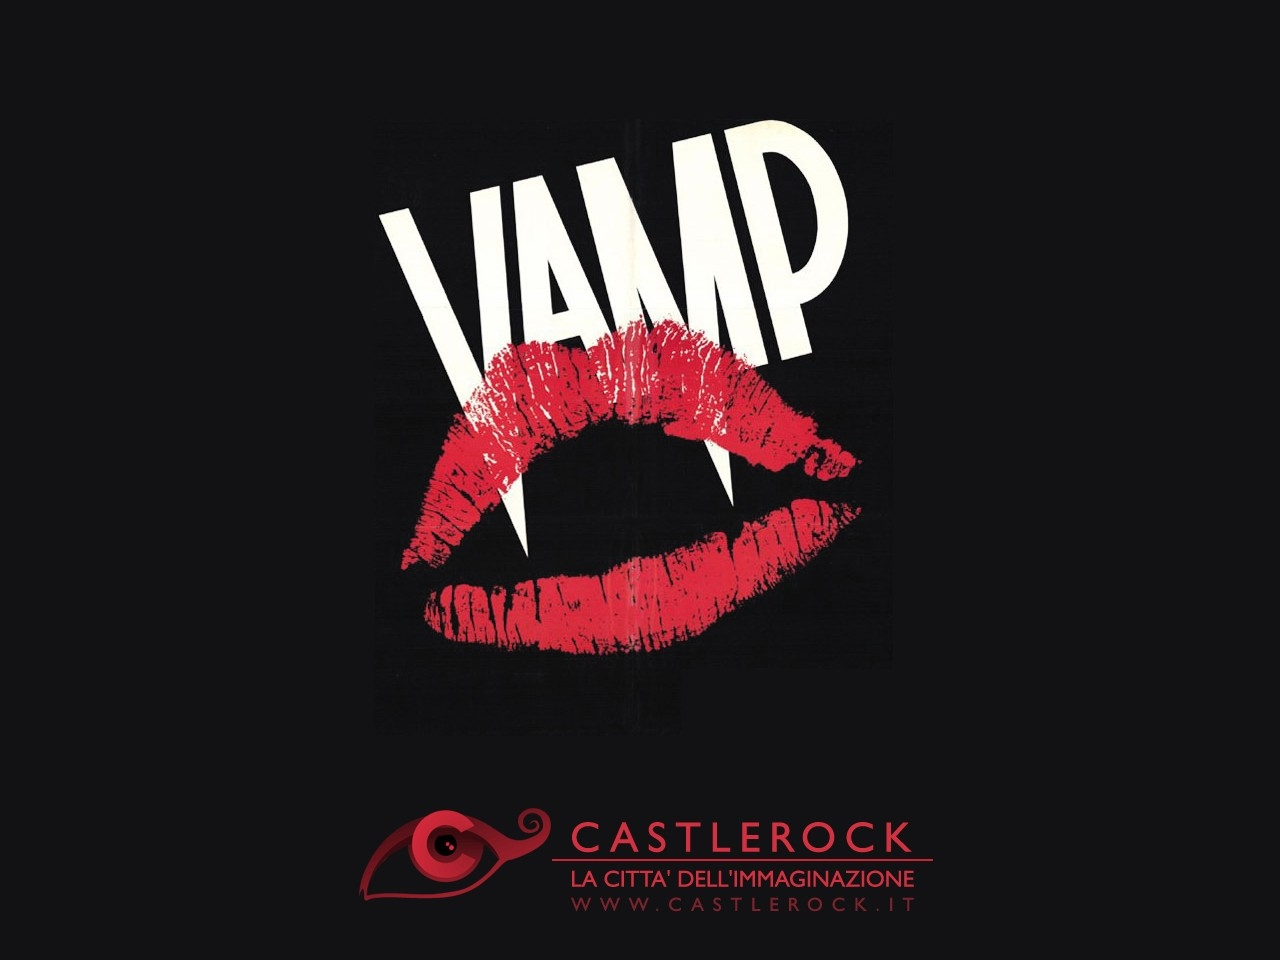 Wallpaper del film Vamp